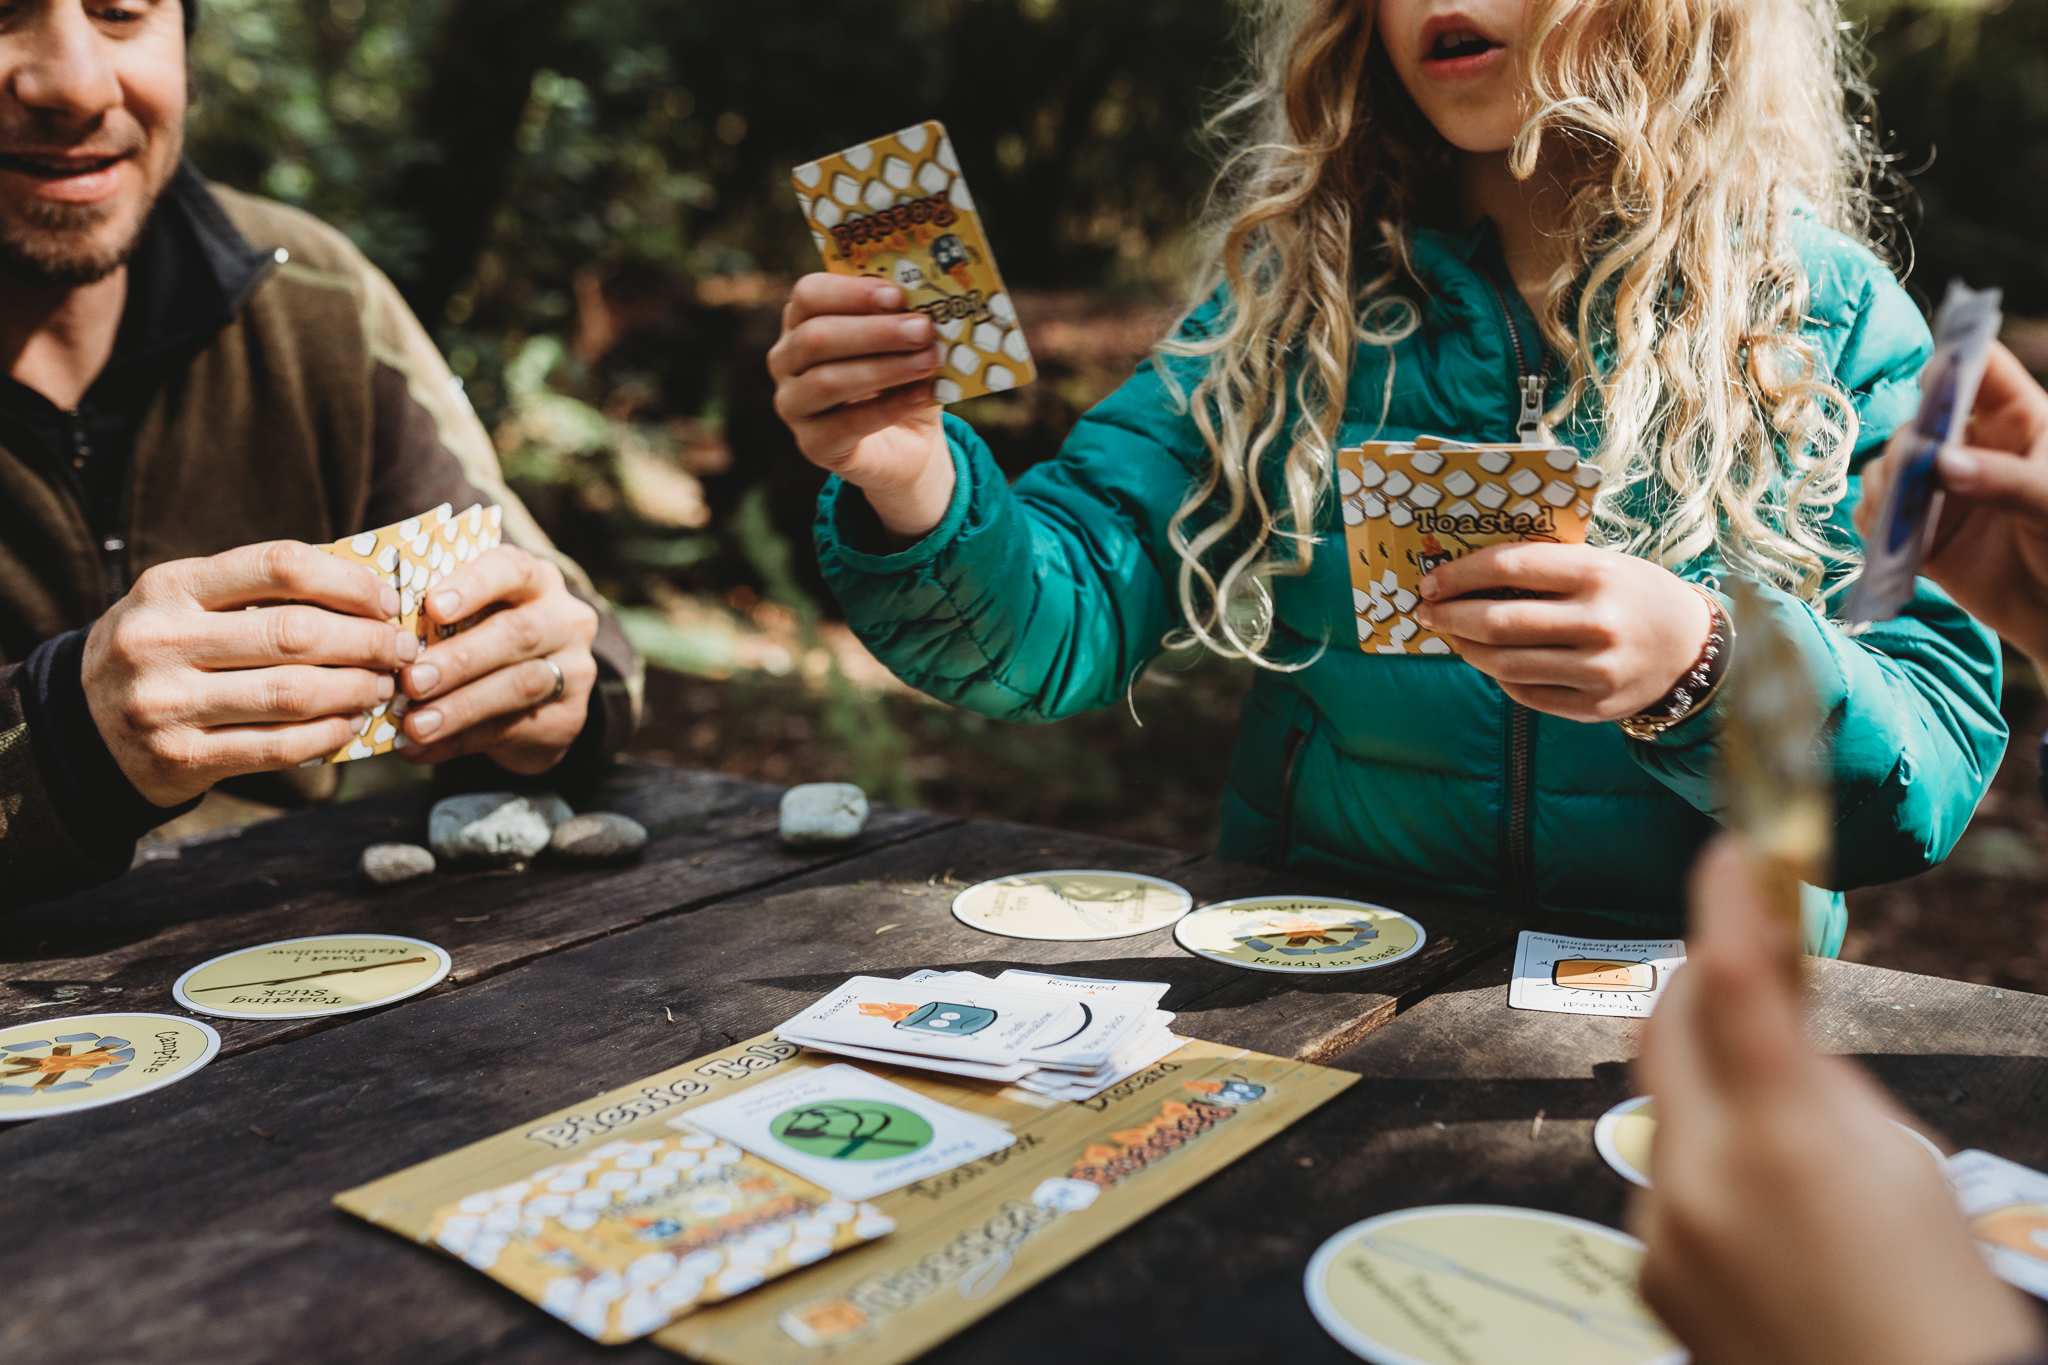 A game of Toasted or Roasted in camp. Photo by Natalie Gildersleeve.